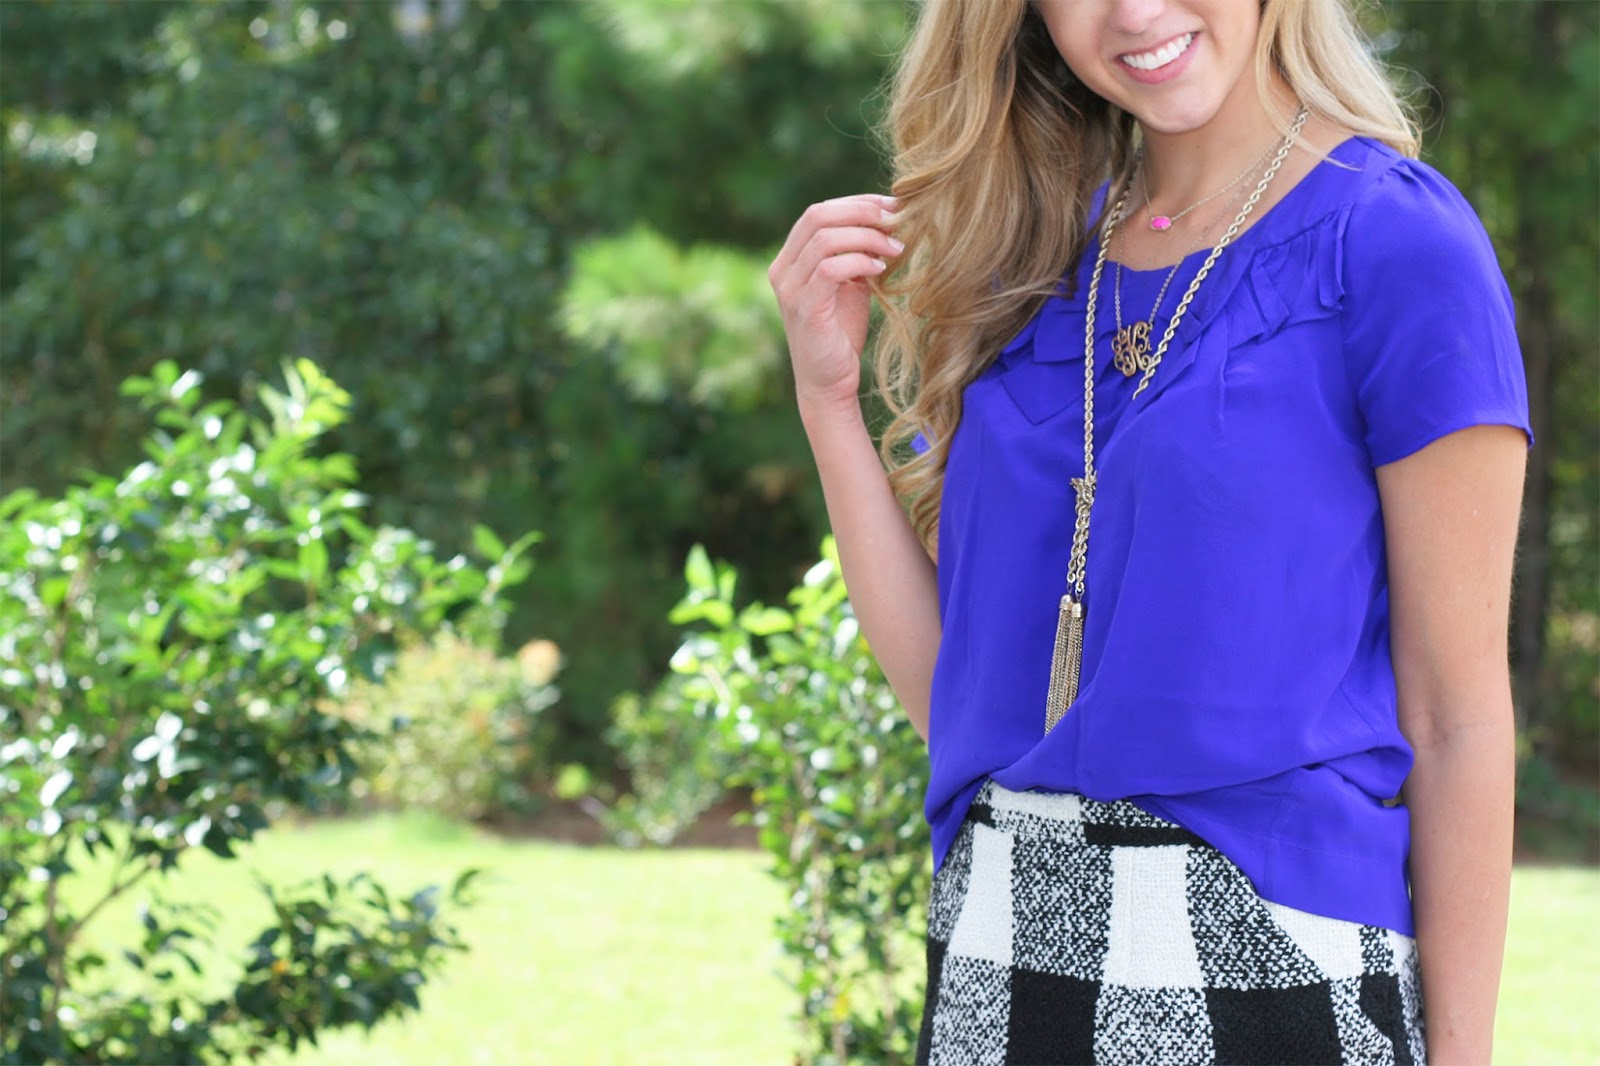 Effortless-tuck-top-for-fall-with-necklace-layers-and-patterned-skirt